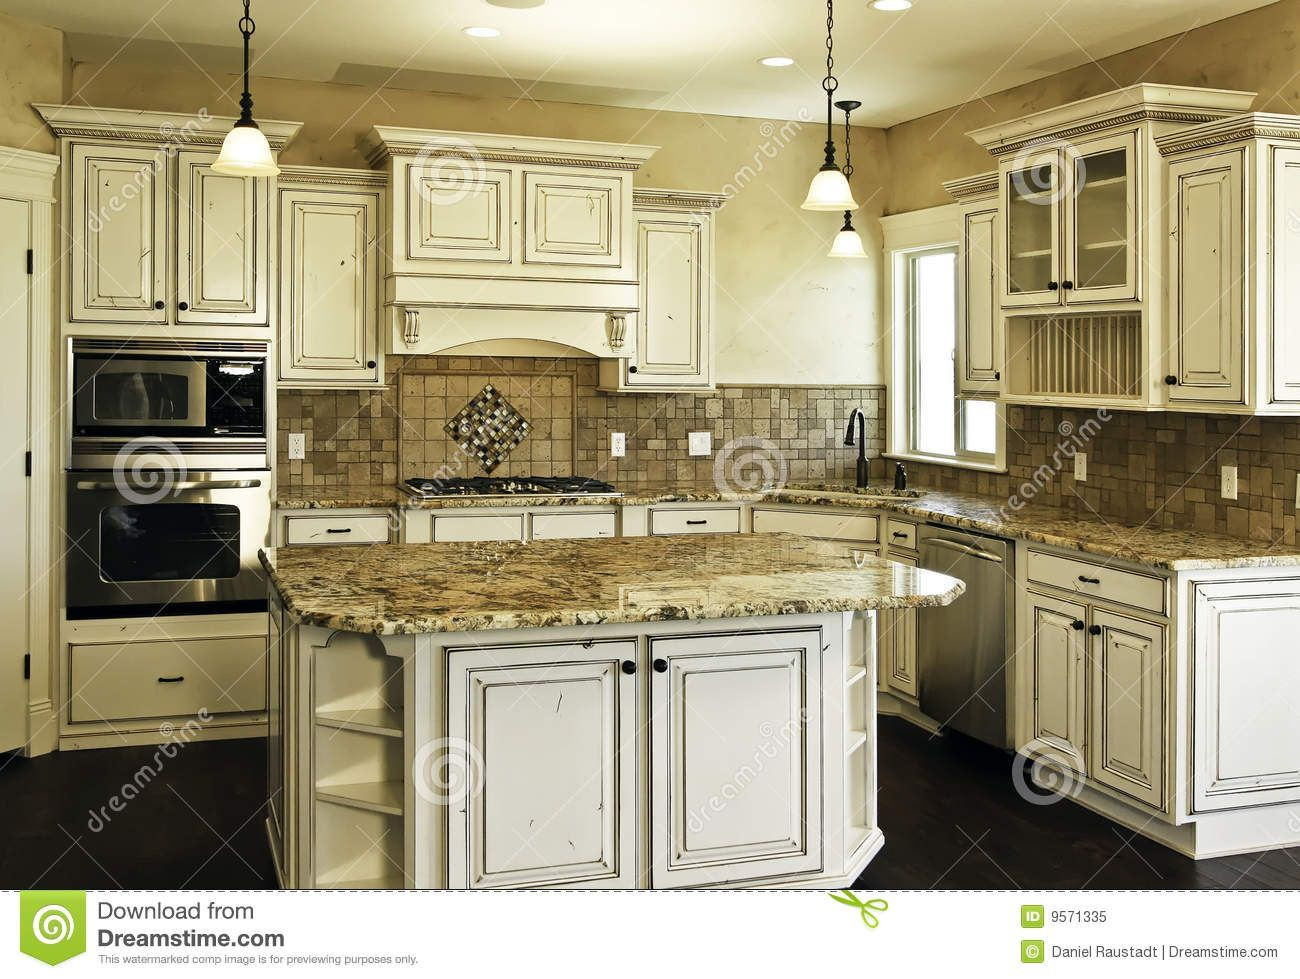 White Distressed Kitchen Cabinets Google Search Distressed Kitchen Cabinets White Modern Kitchen Distressed Kitchen